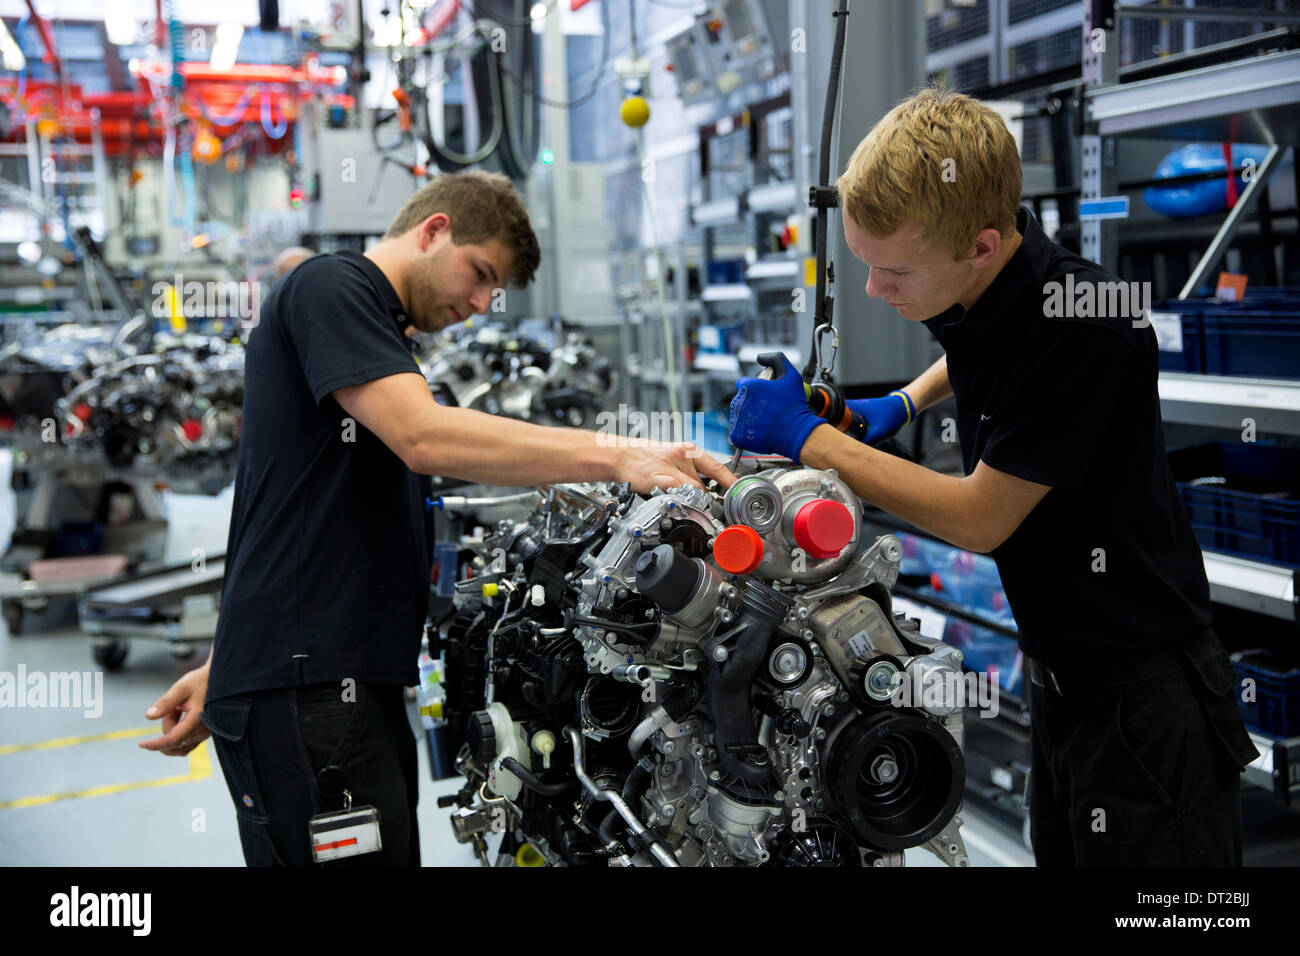 Mercedes-AMG engine production factory Germany - trainee engineer supervised hand-building M157 5.5L V8 biturbo engine, Germany - Stock Image